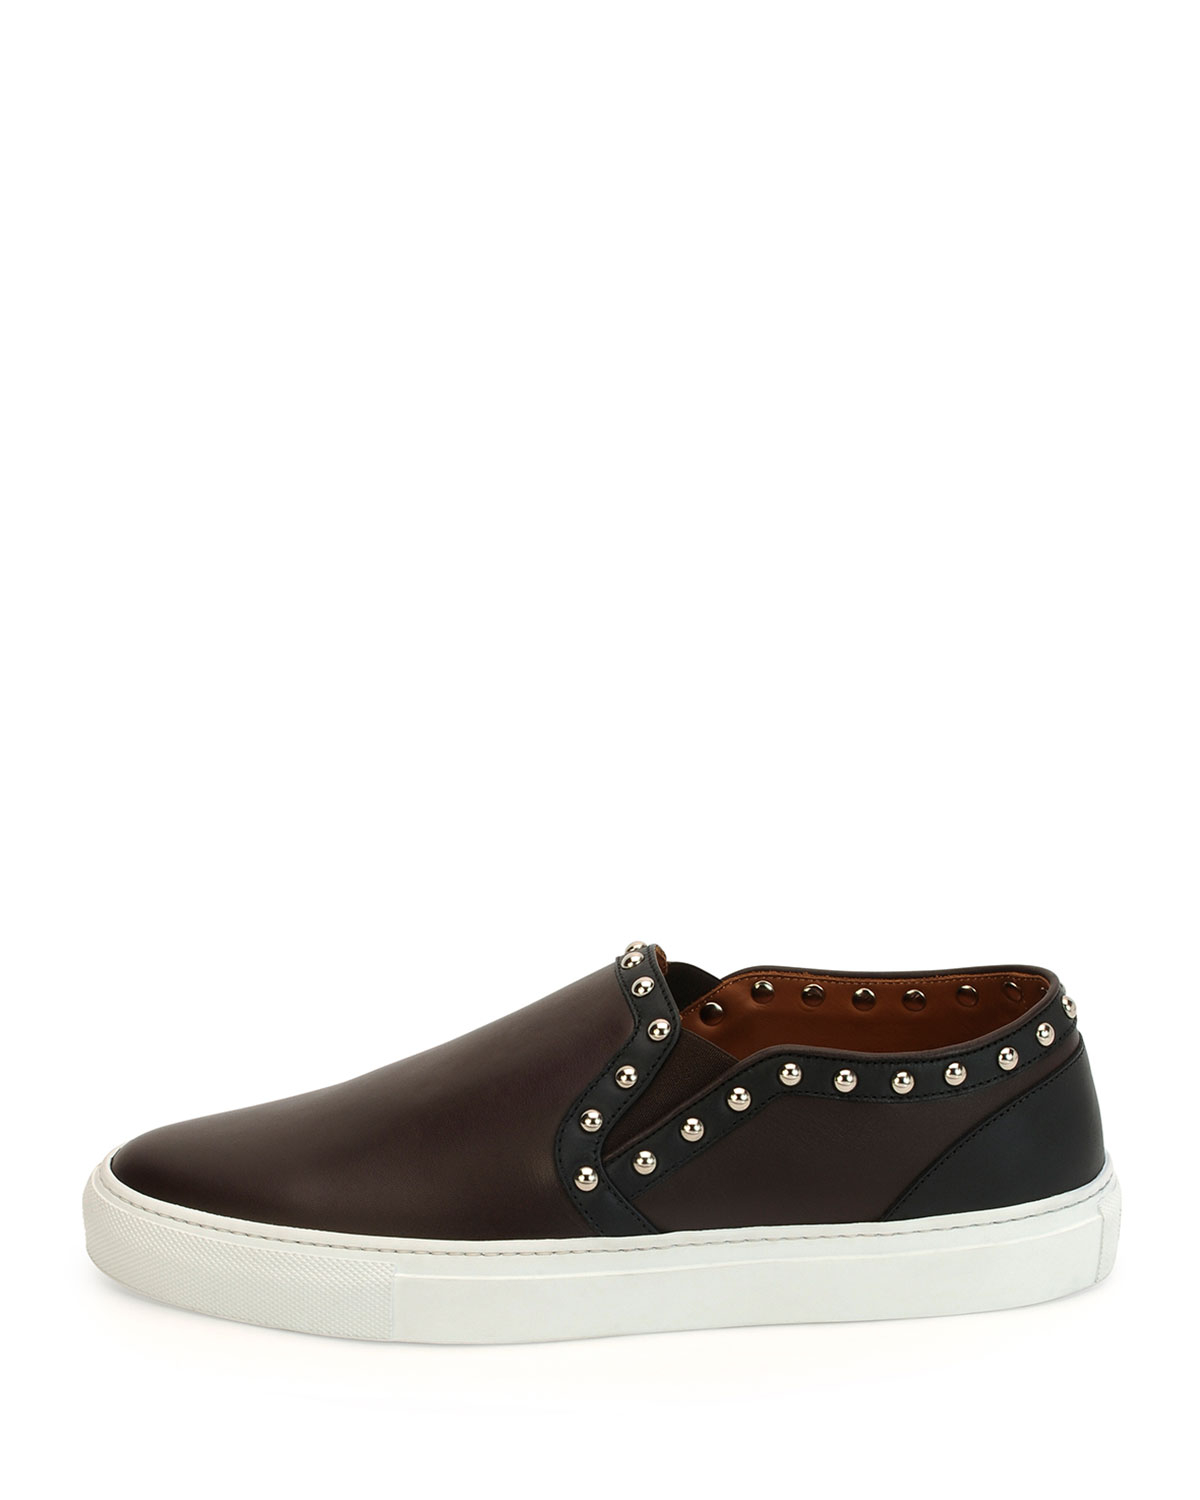 givenchy studded skate shoe in black for lyst